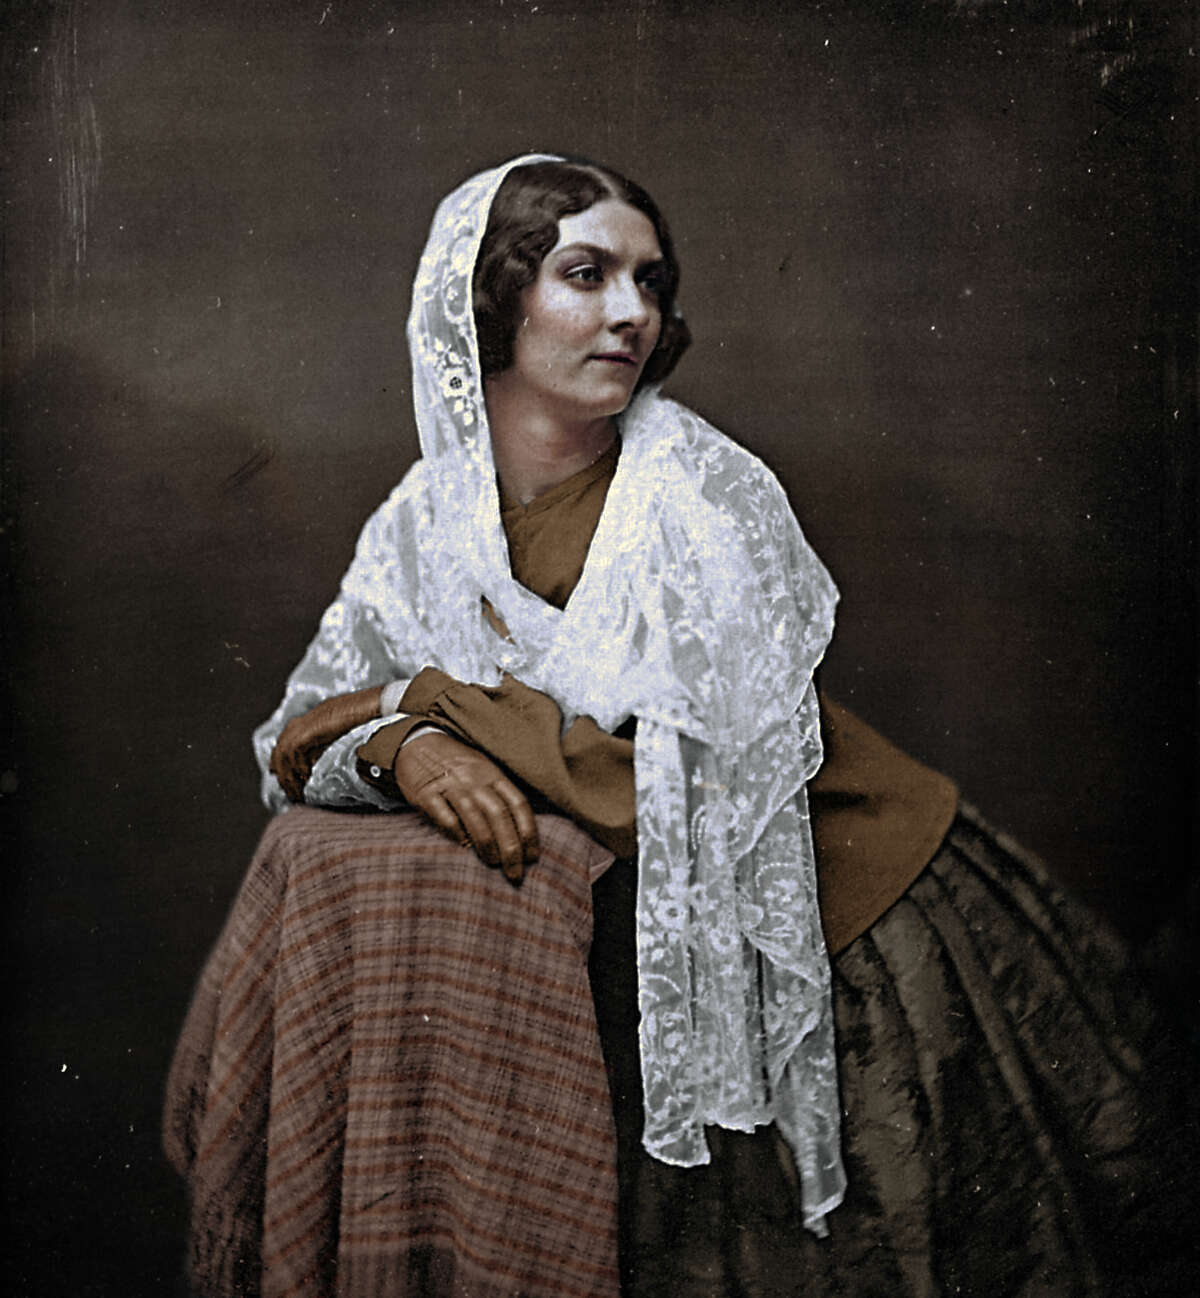 A photo of Lola Montez, a well-known Spanish dancer. Matt Loughrey and Sarah McWalter, of